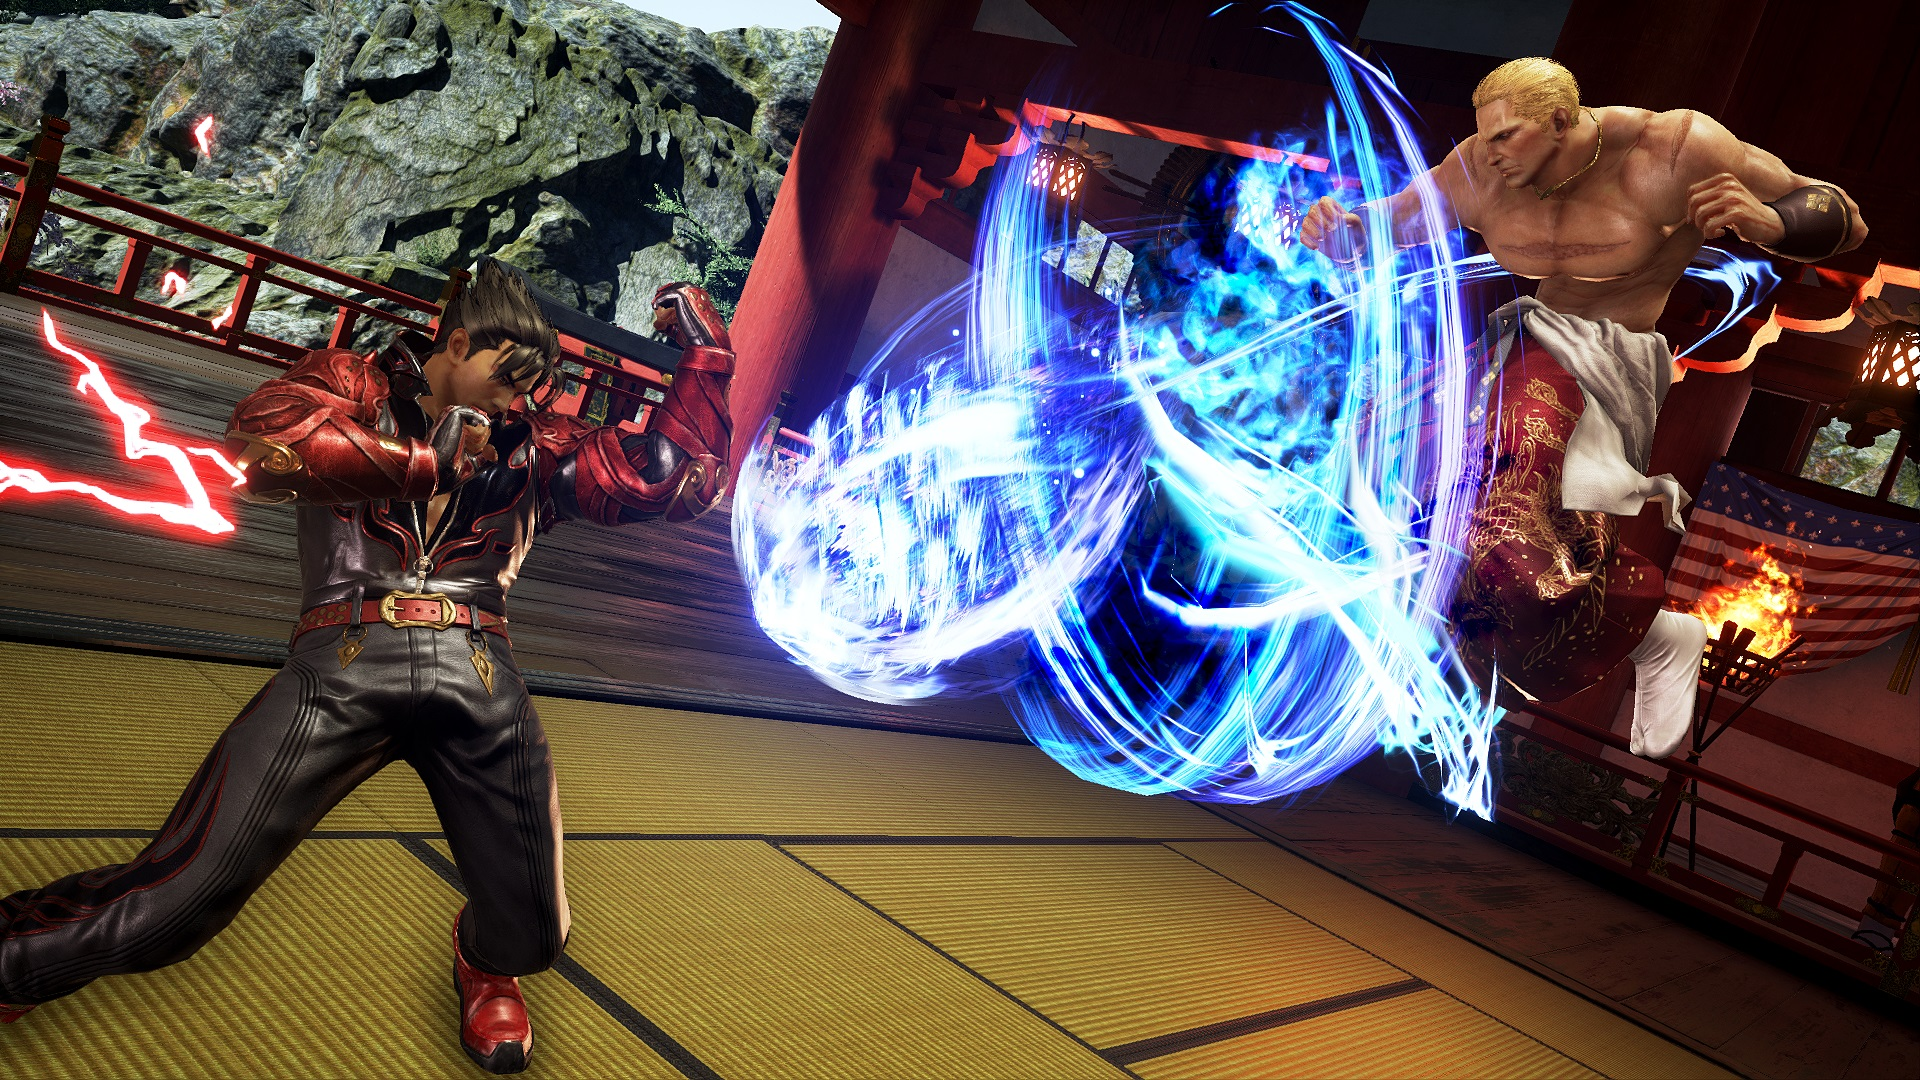 Tekken 7 Version 1 09 Adds Dlc Character Geese Howard Rematch Feature In Player Matches News Avoiding The Puddle